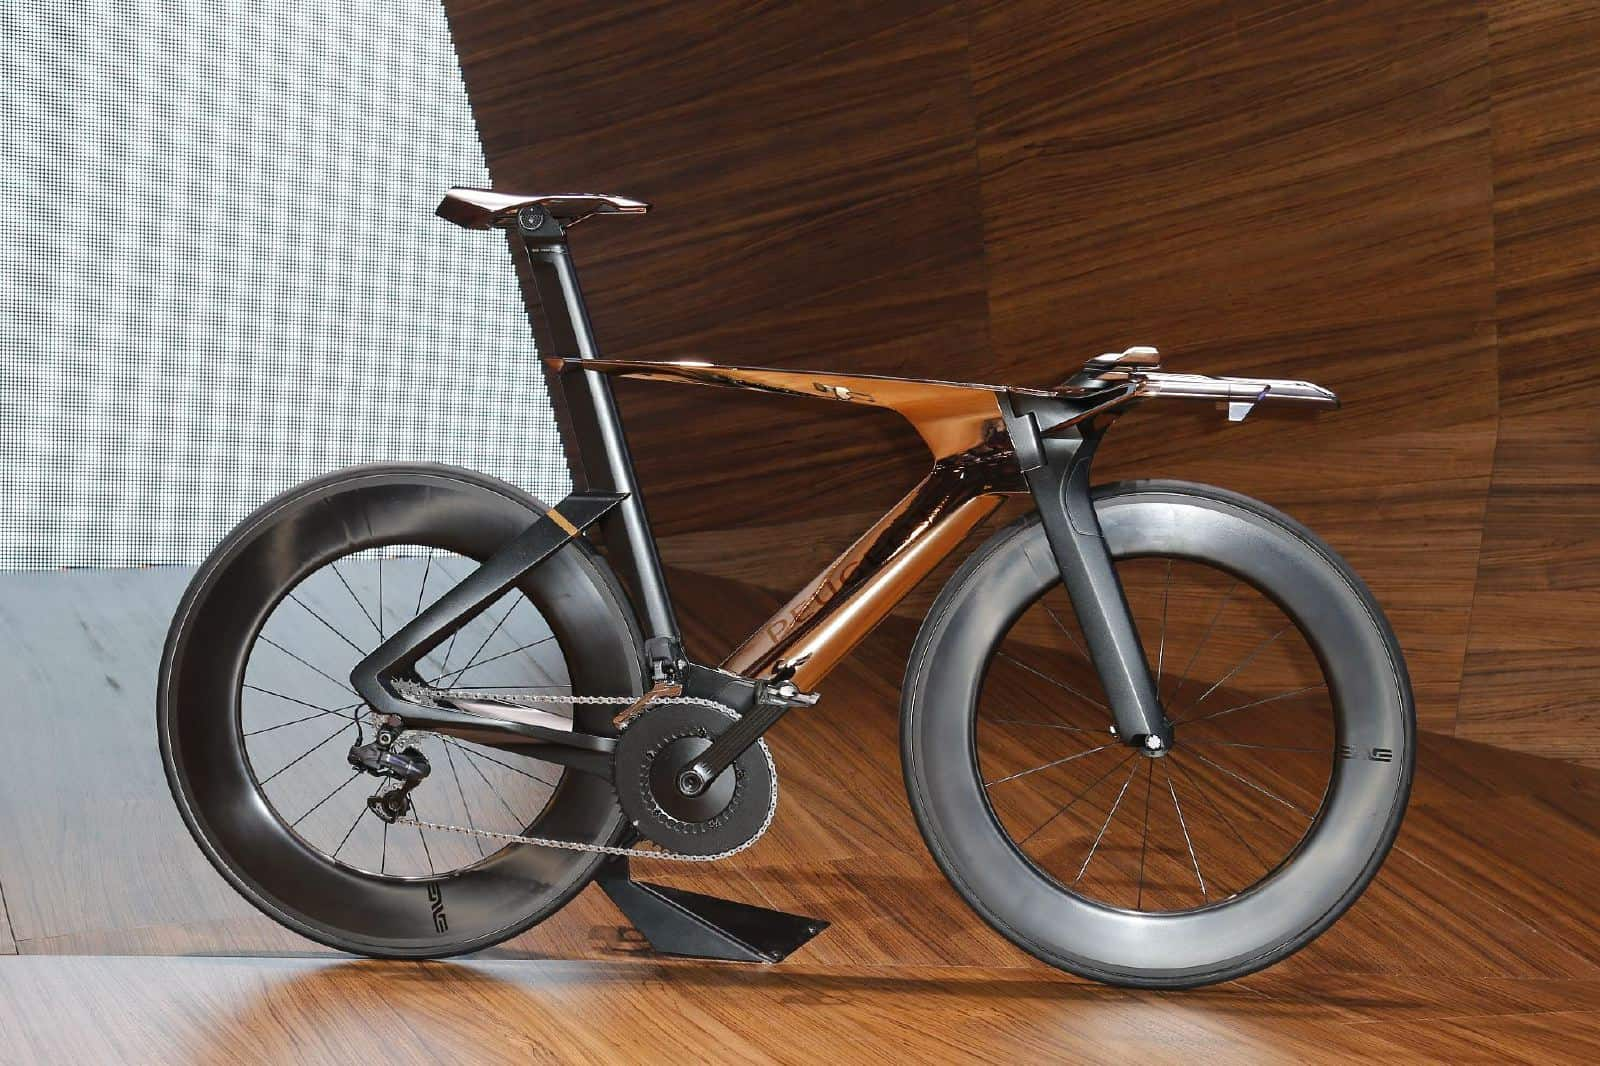 13 best peugeot bicycles images on pinterest cycling peugeot and peugeot bike